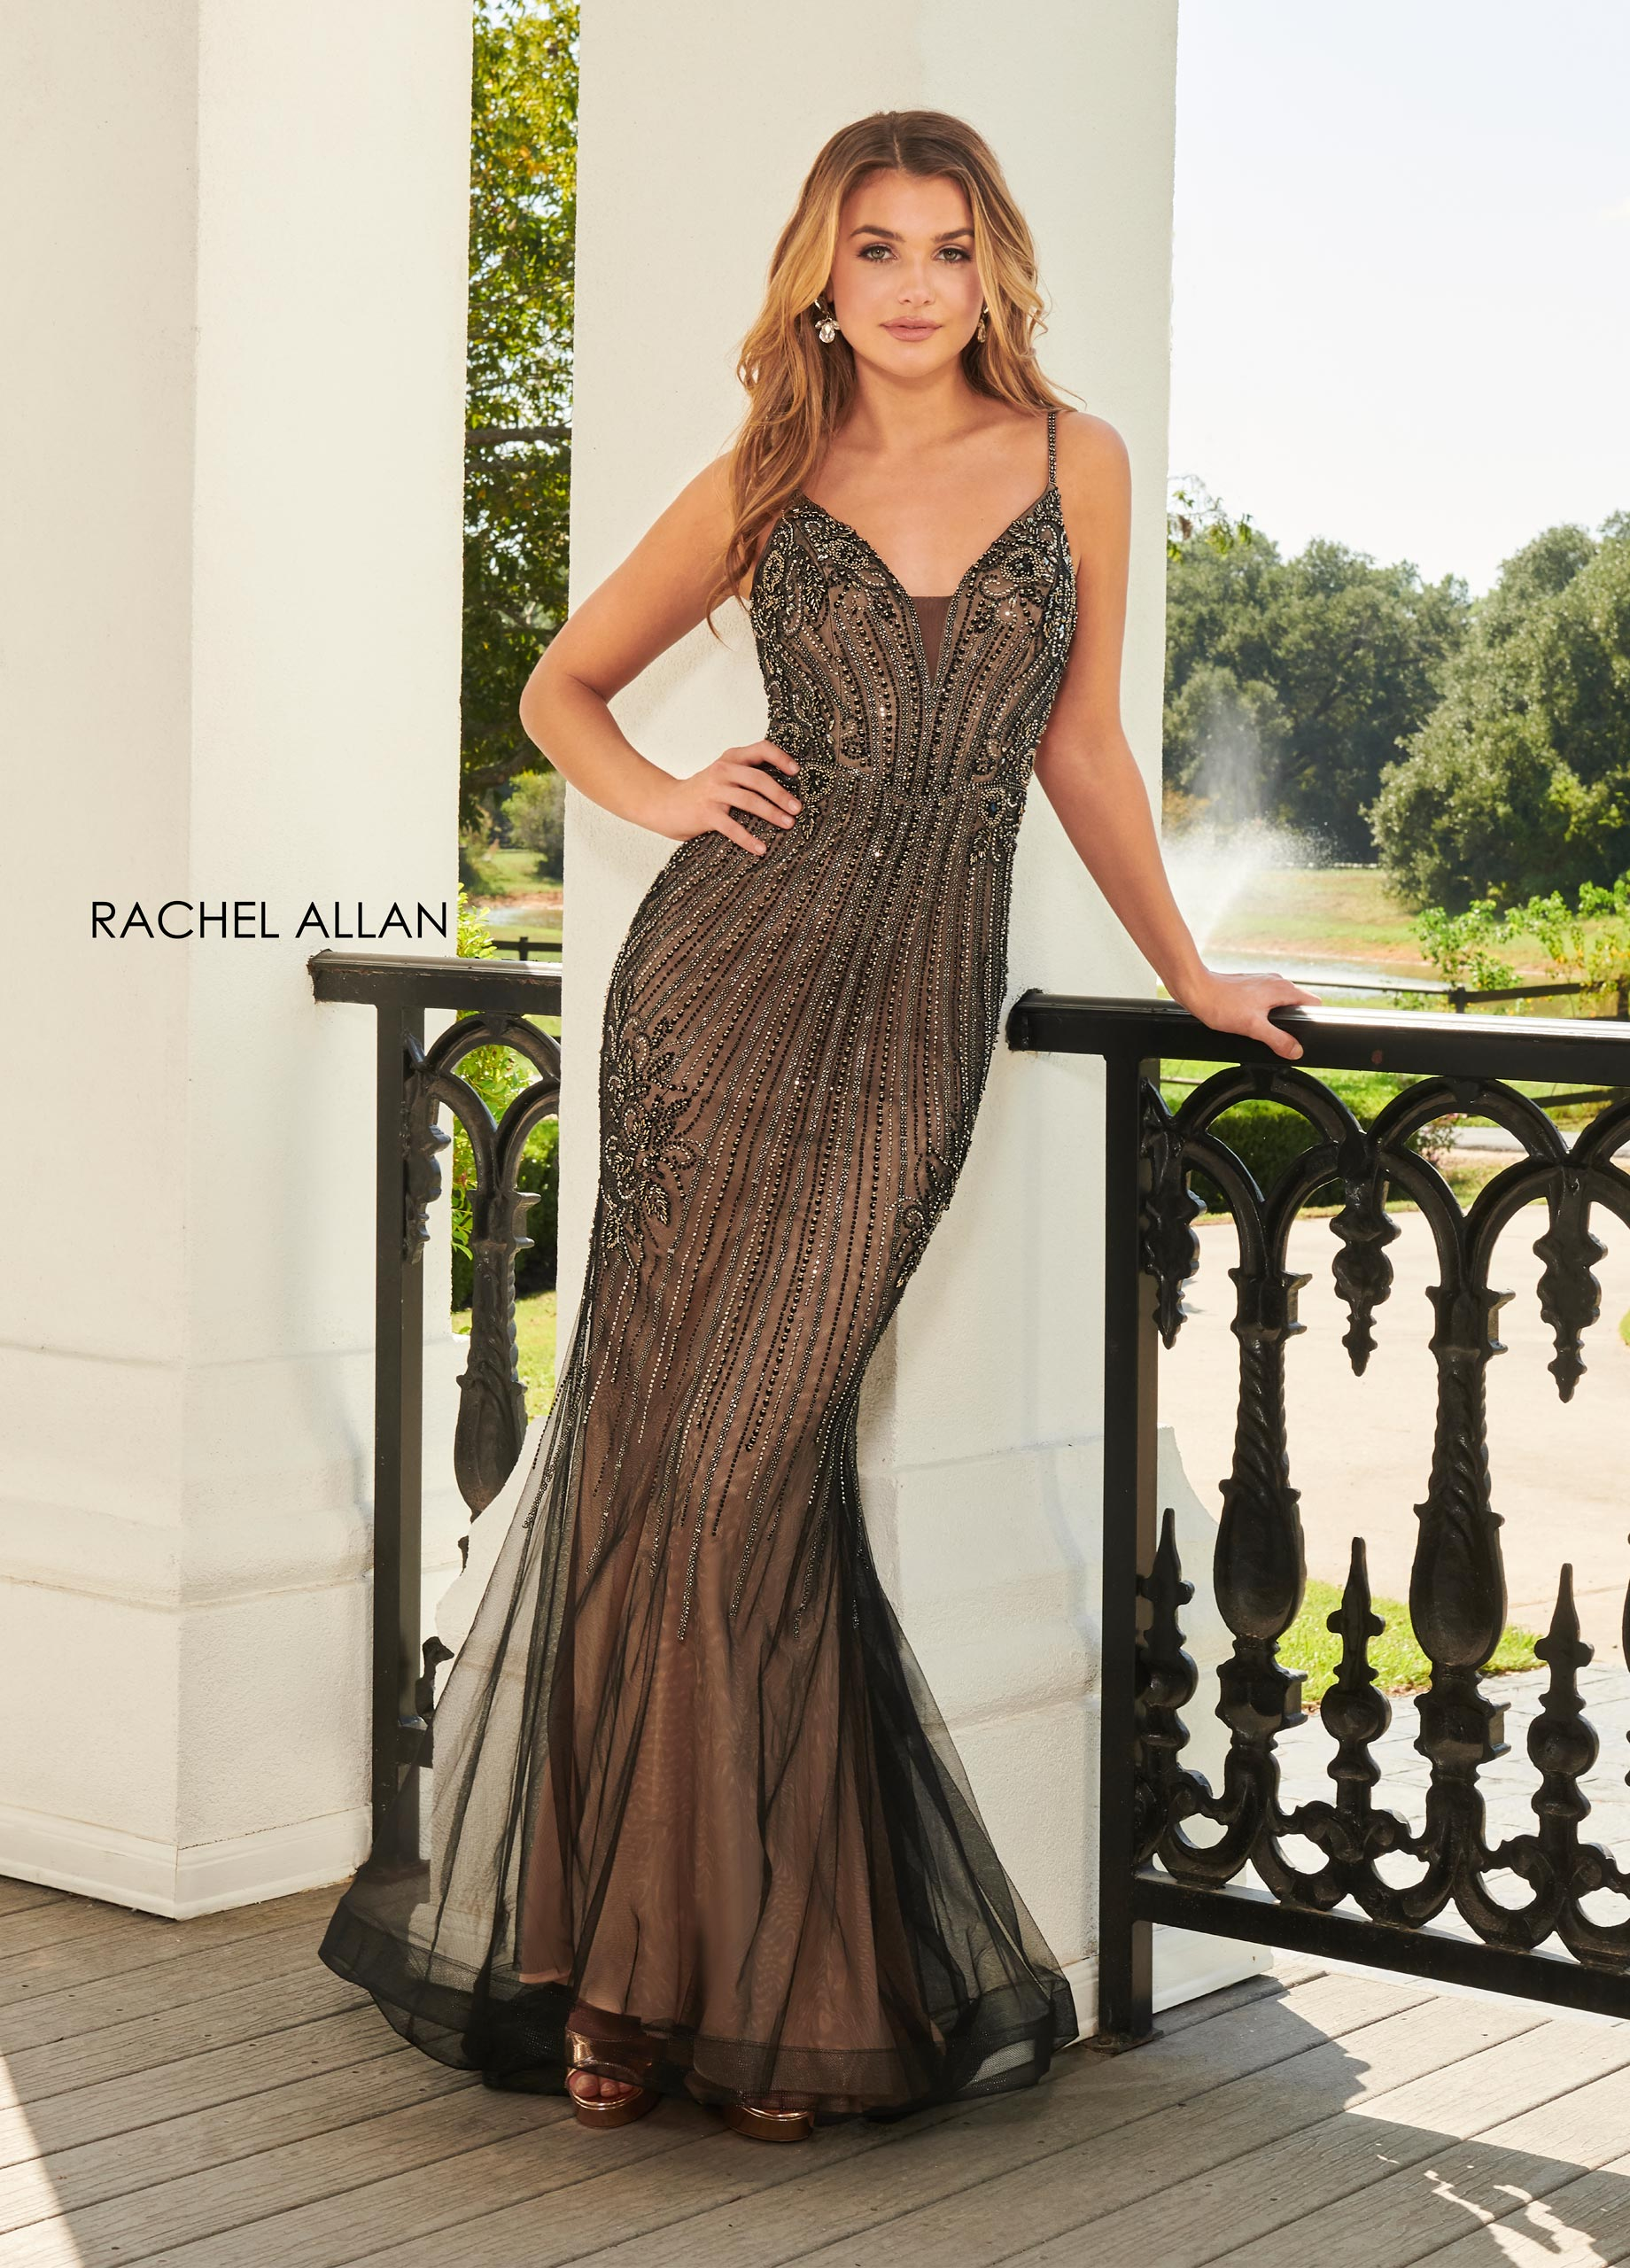 V-Neck Fit & Flare Prom Dresses in Black Color